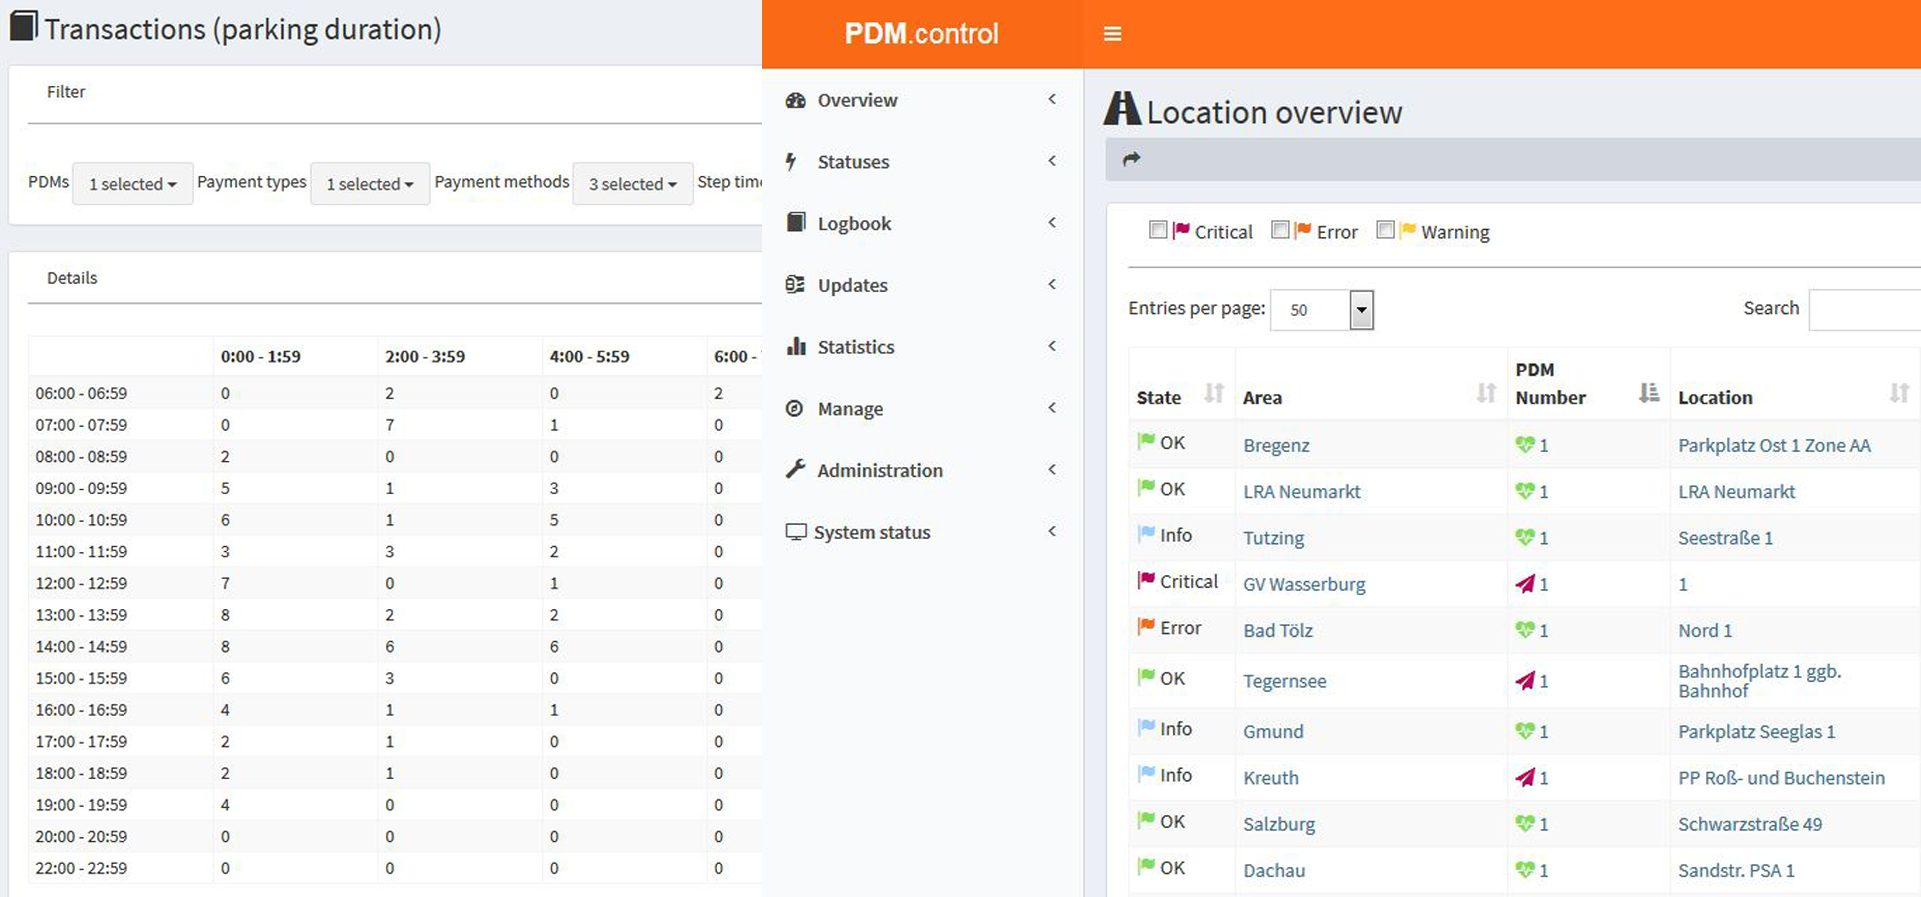 PDM control screenshot EN